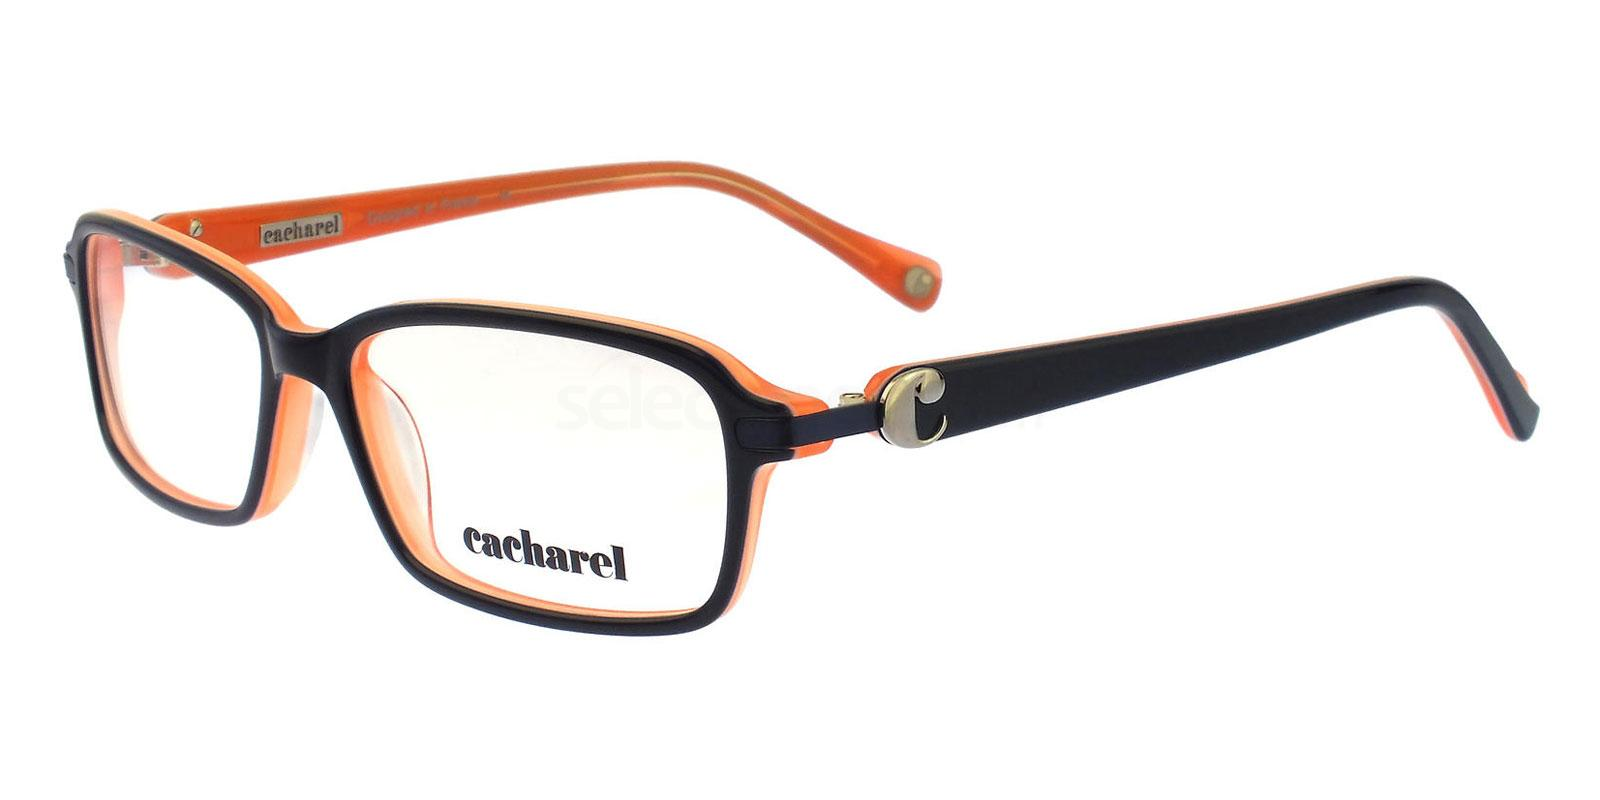 603 CA3012 Glasses, Cacharel